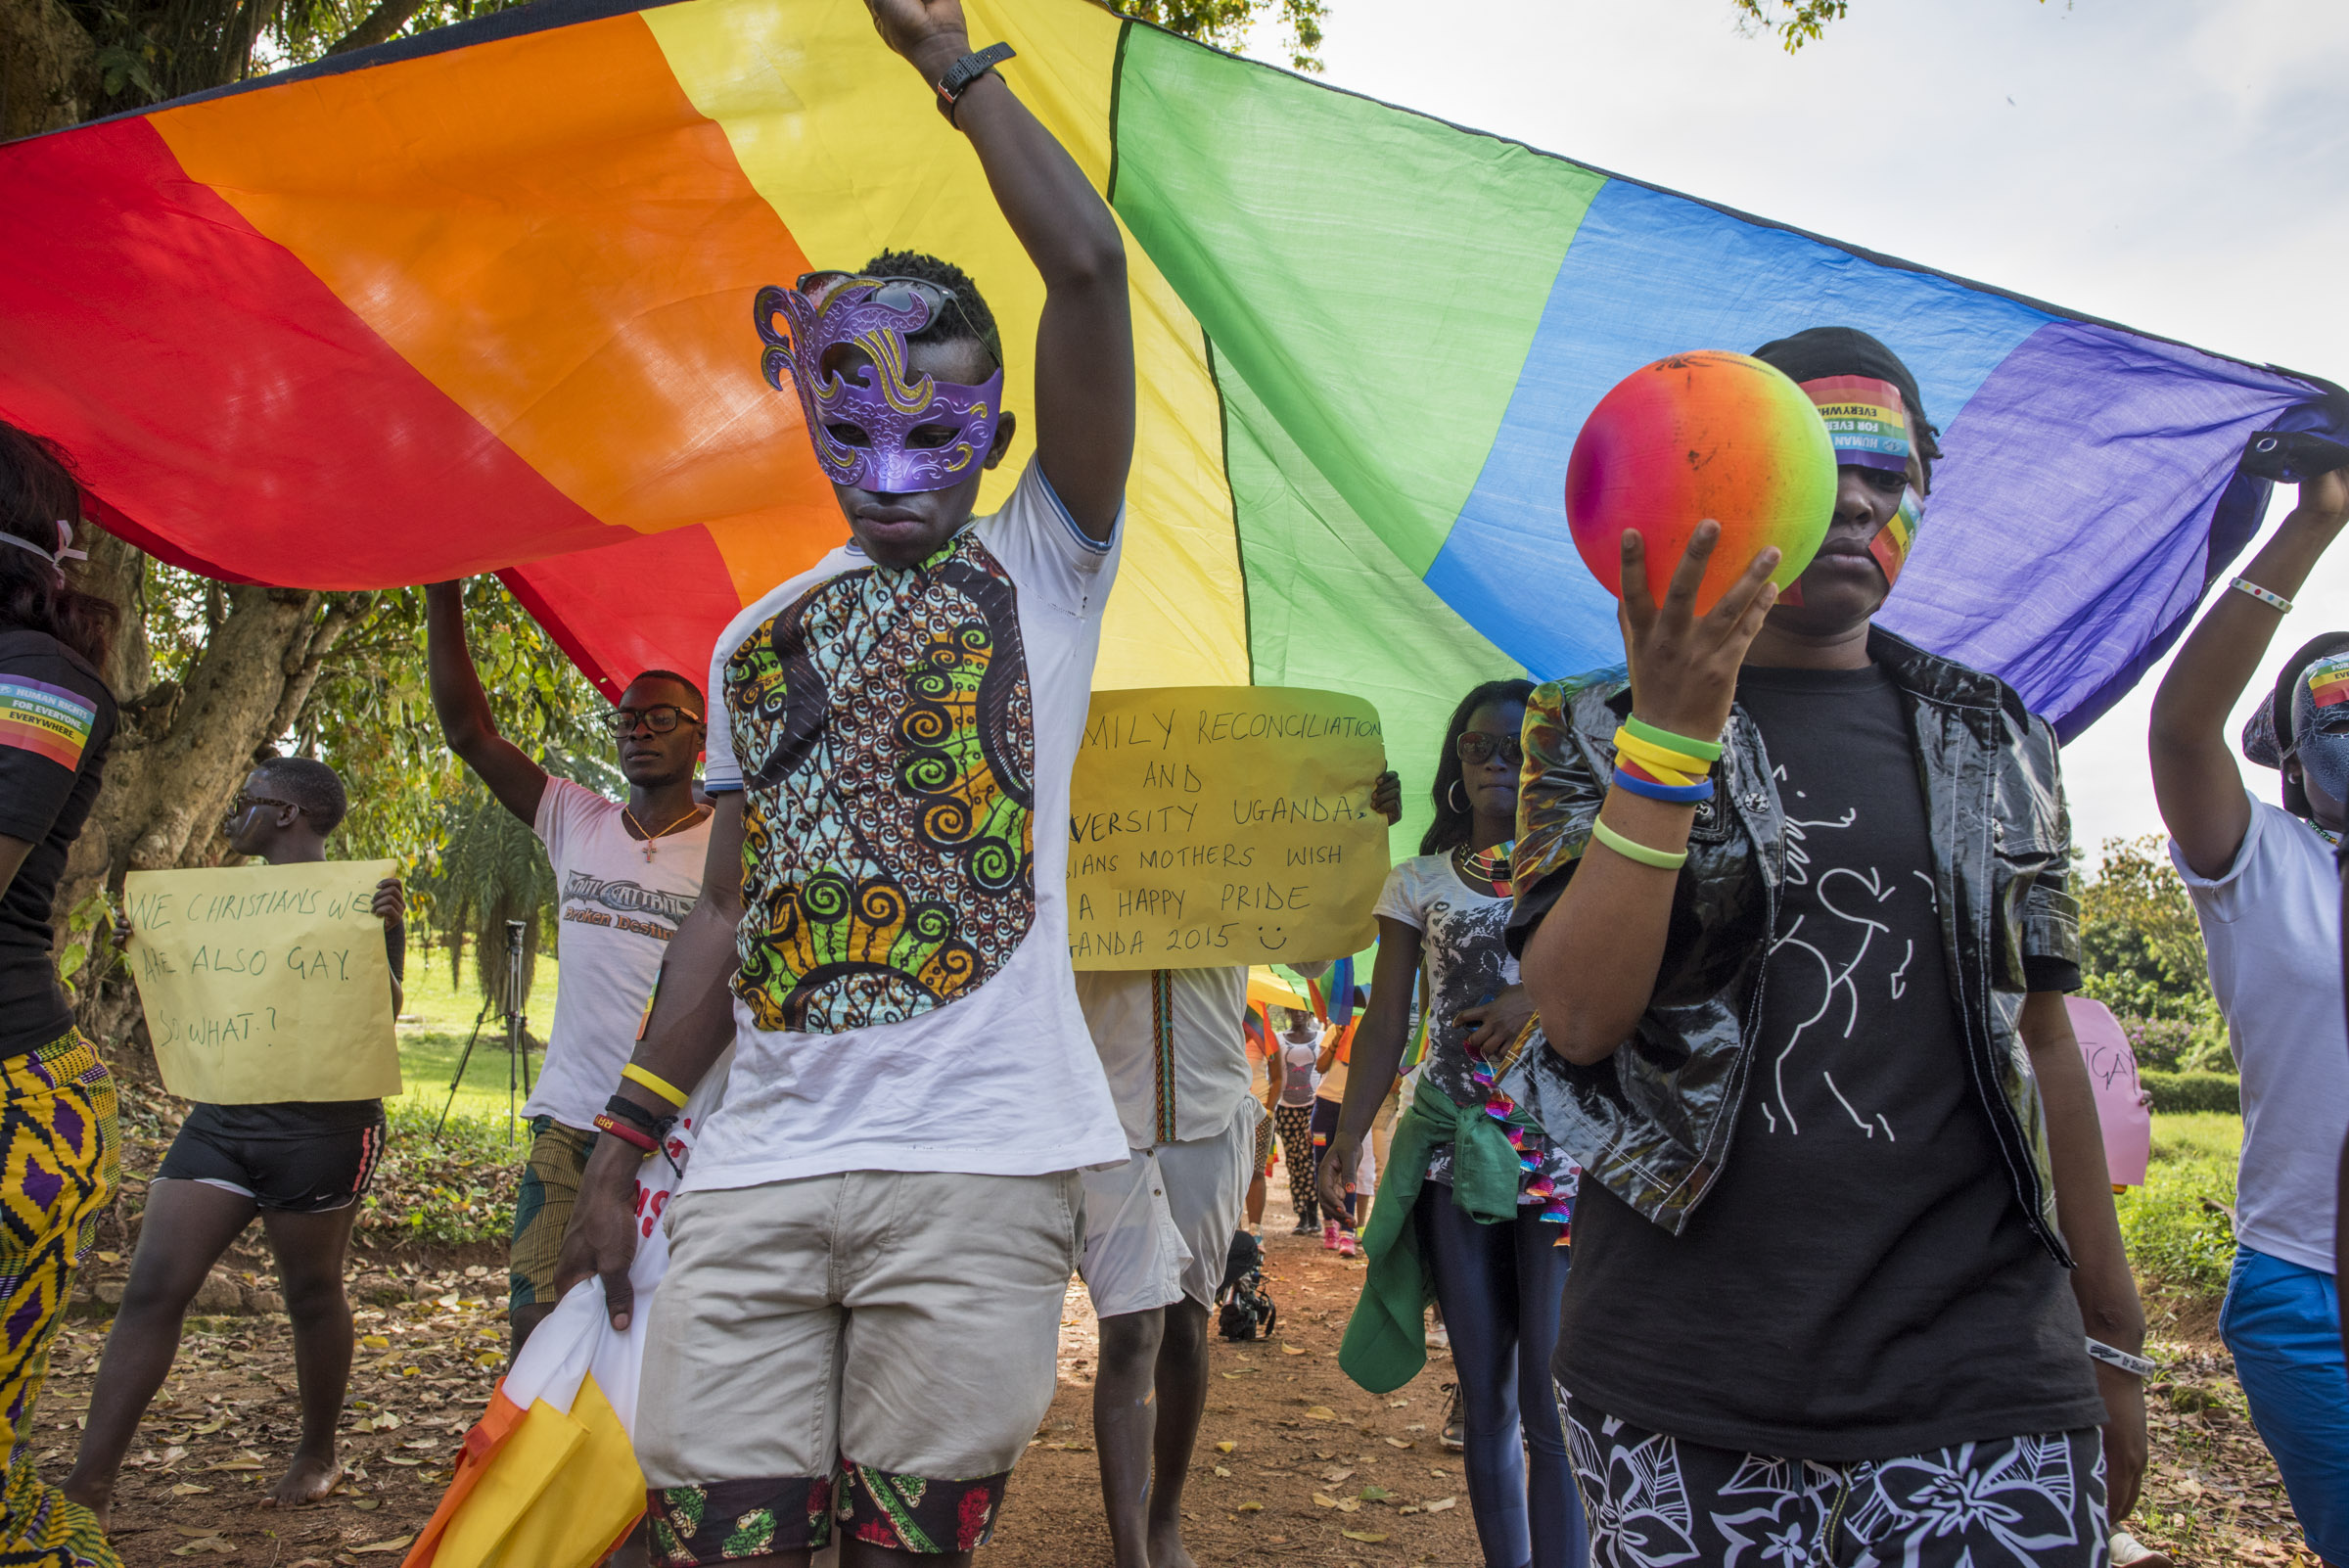 Members of the LGBT community and their supporters participate in a Pride march in a park on the banks of Lake Victoria in Entebbe, 40 km from Kampala. Safety concerns made it impossible to hod the march in a more public location like downtown Kampala. Entebbe, Uganda. August 8, 2015. (Photo by Diana Zeyneb Alhindawi/GroundTruth)